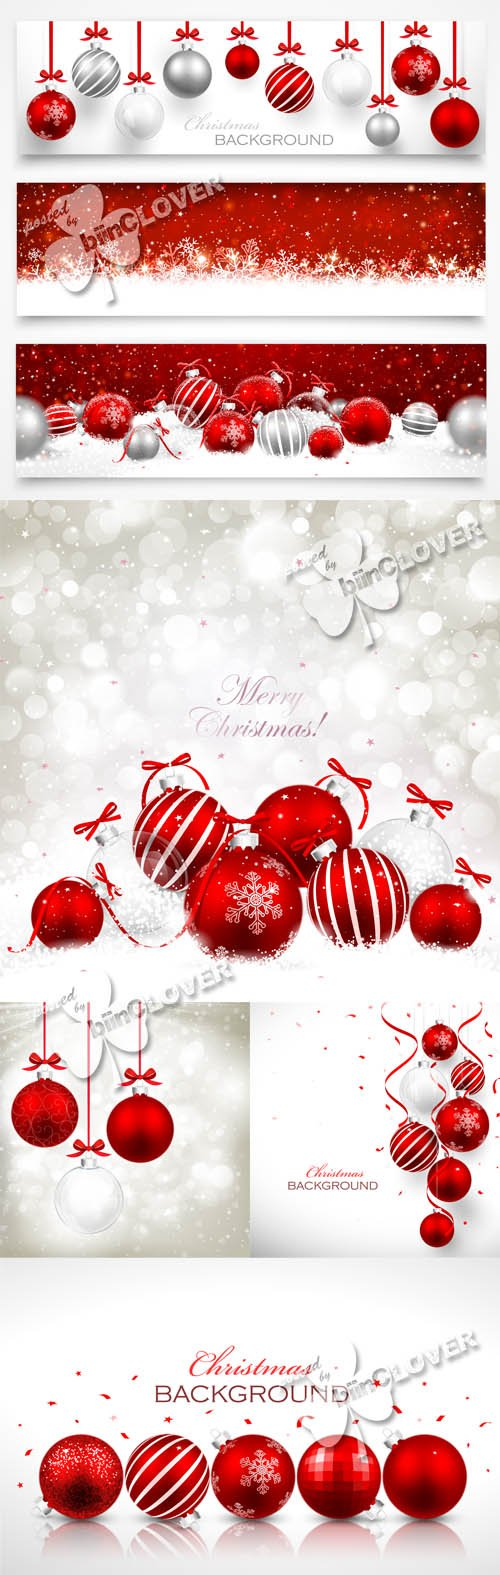 Christmas cards with red balls